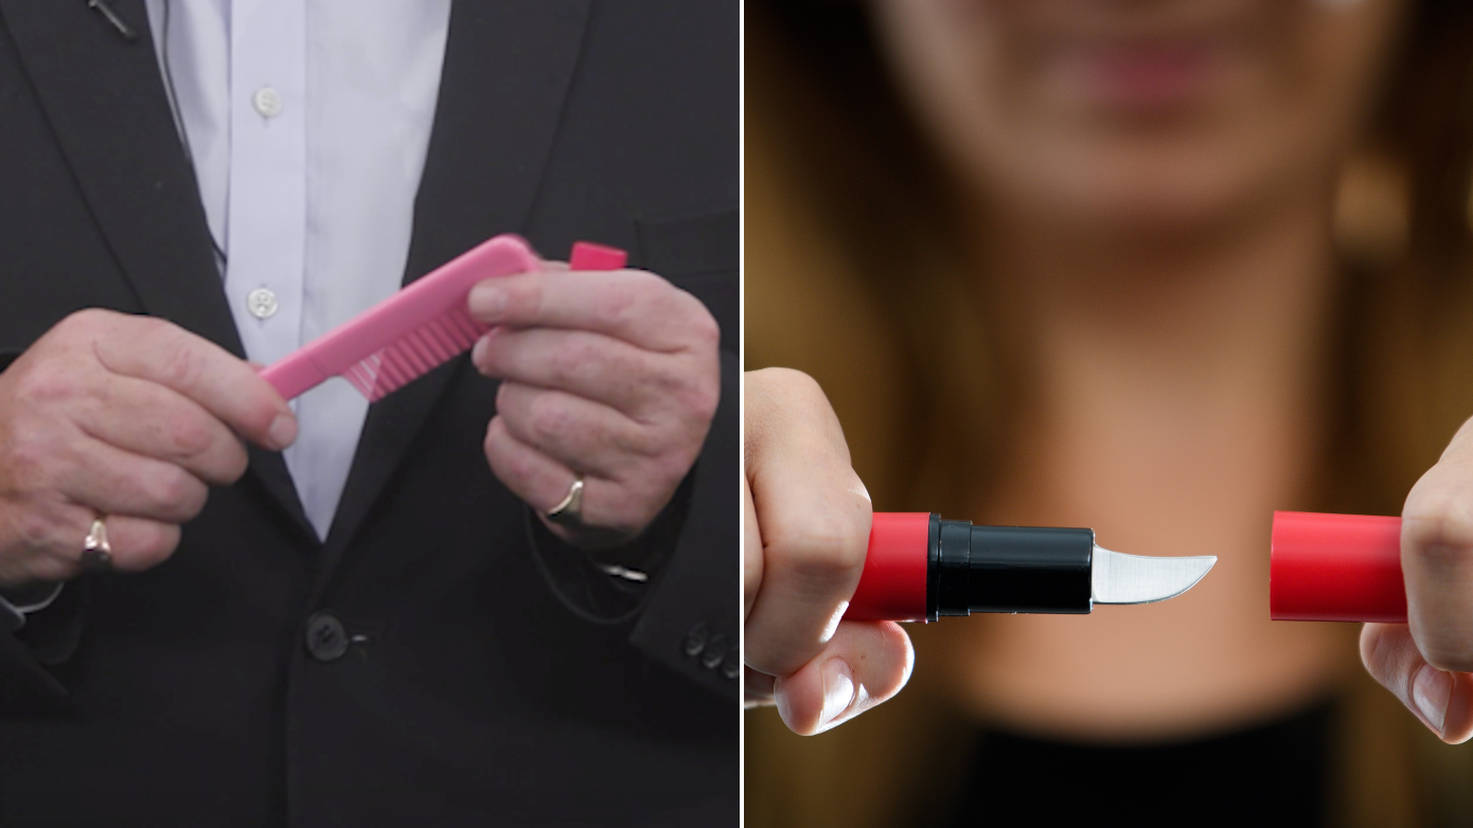 Knives Disguised As Combs And Lipsticks Available For Sale Via Instagram